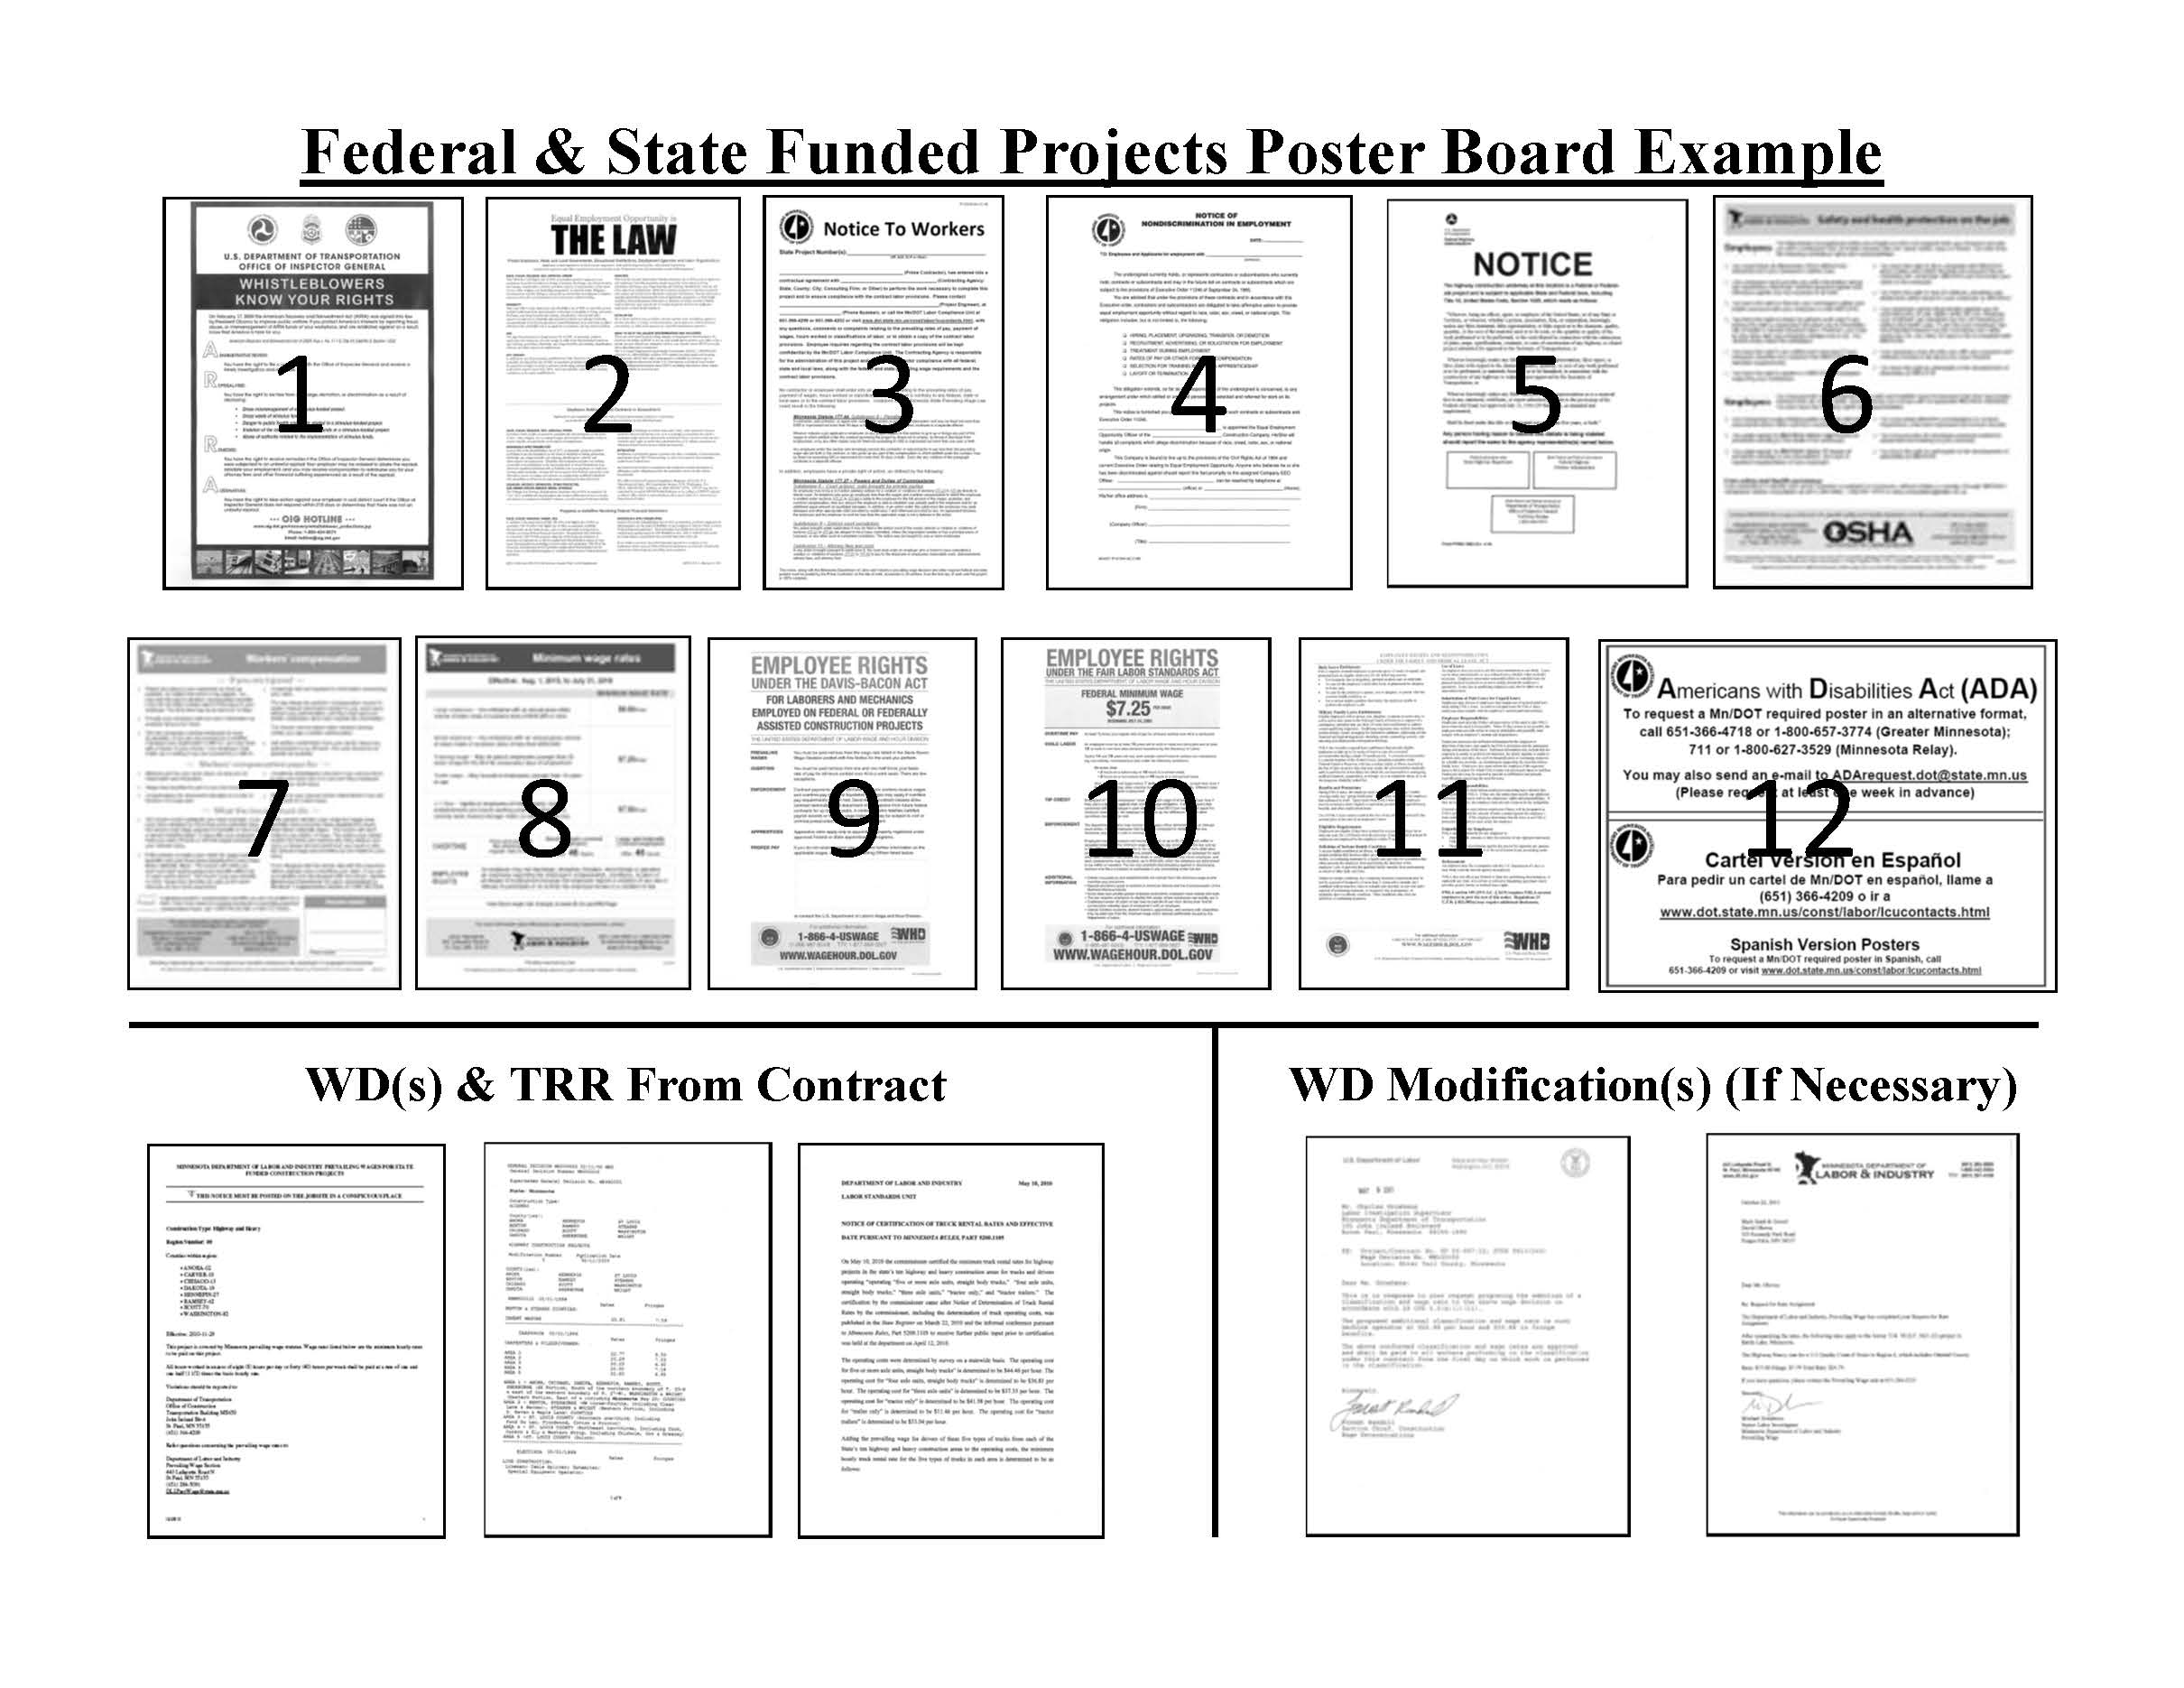 An image showing poster boards including posters such as whistleblowers, the law, notice to workers, employee rights, Americans with Disabilities Act.